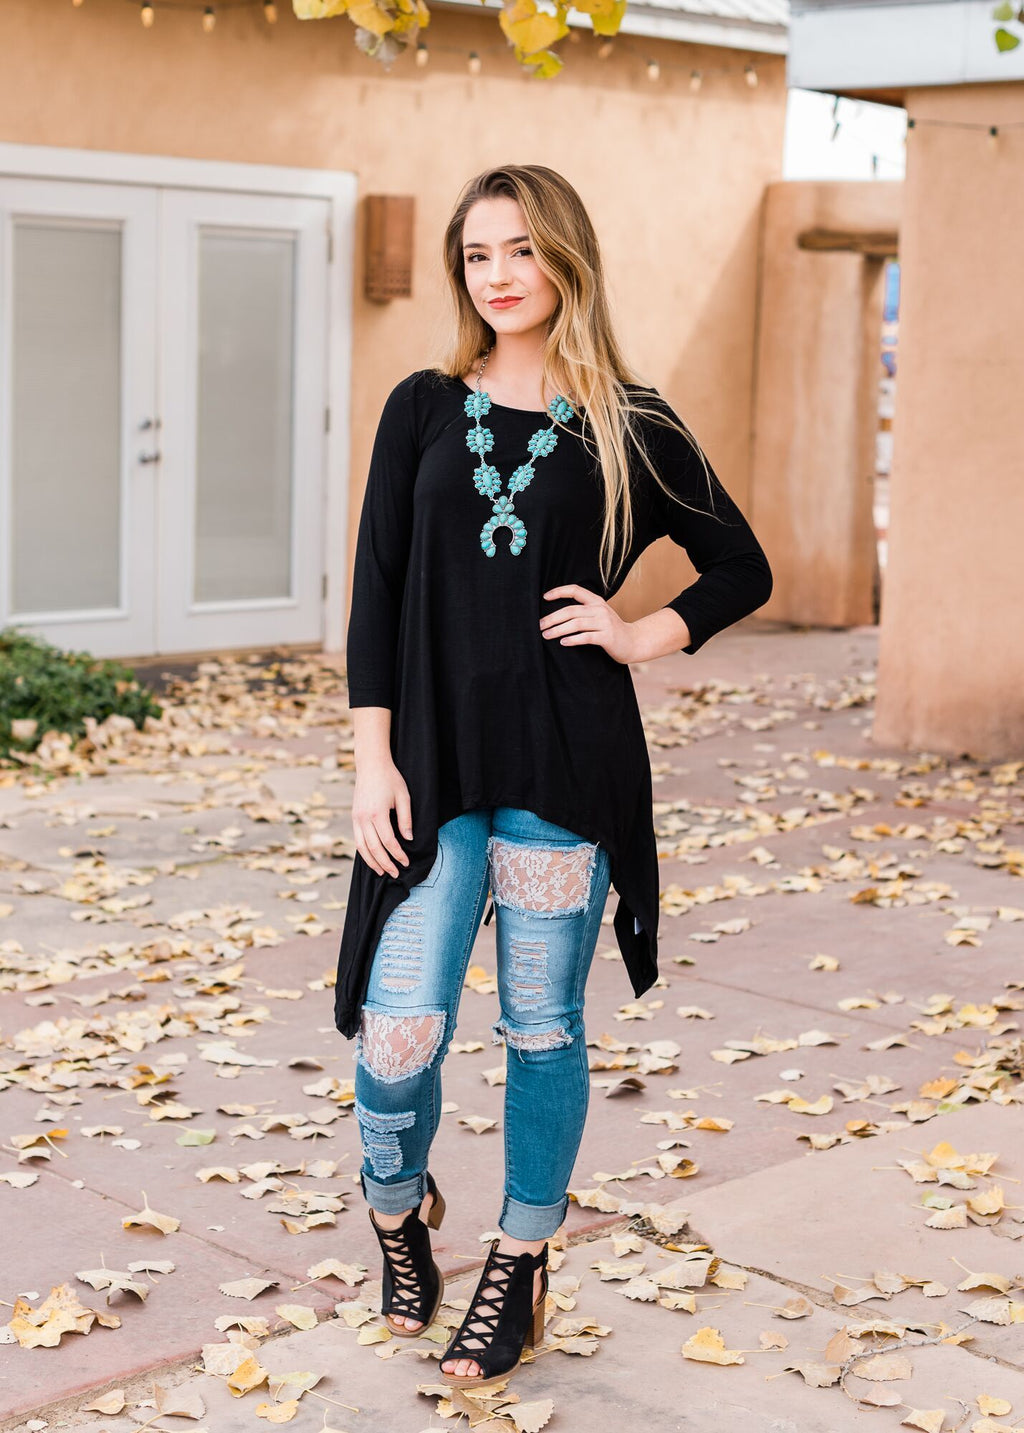 Black Lace Up Long Sleeve Top with shark bite detail on blonde model wearing turquoise squash blossom